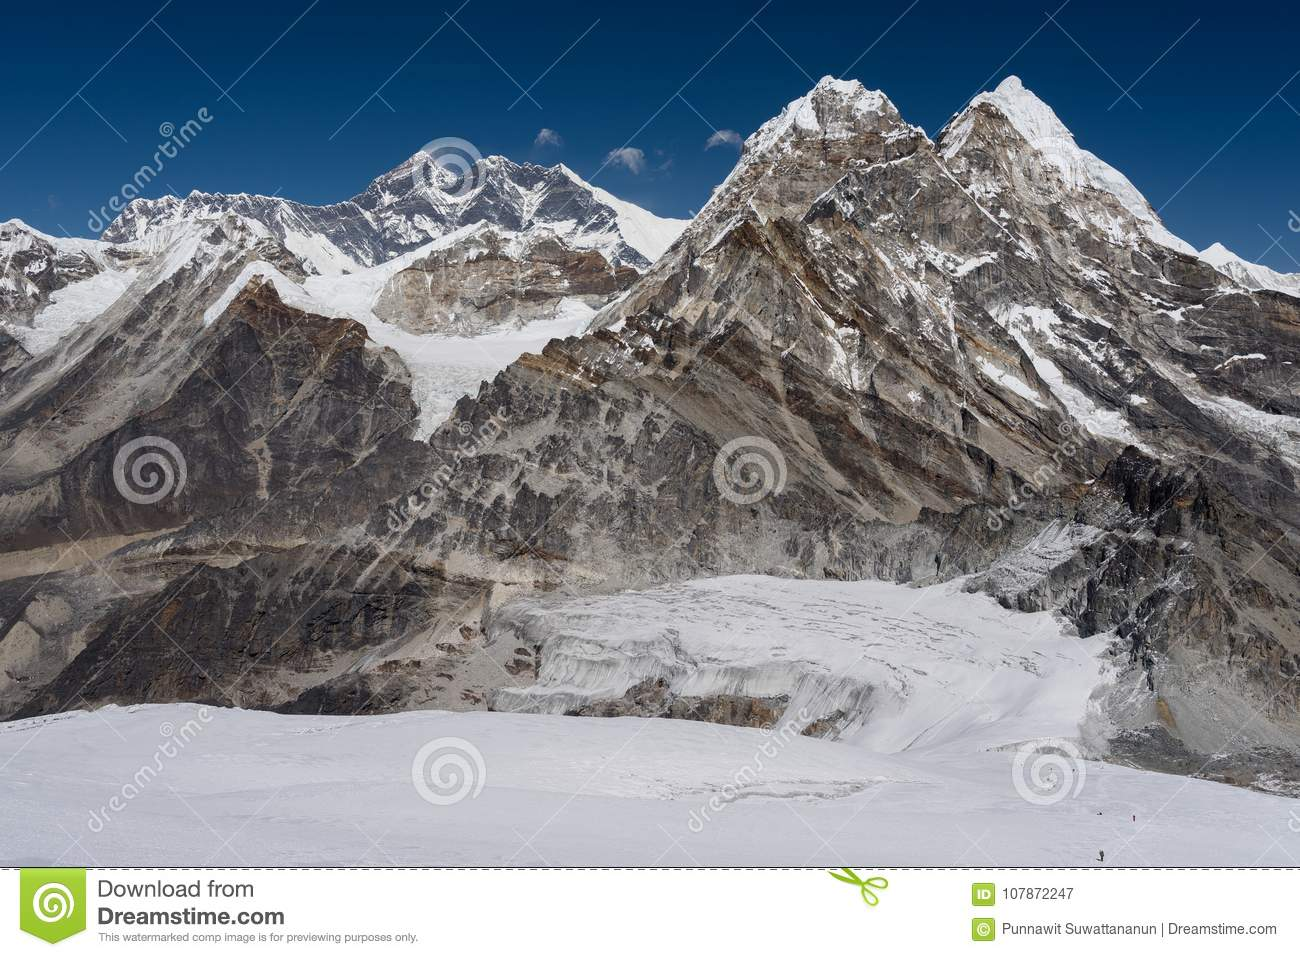 Everest mountain peak view from the way to Mera peak, Everest re